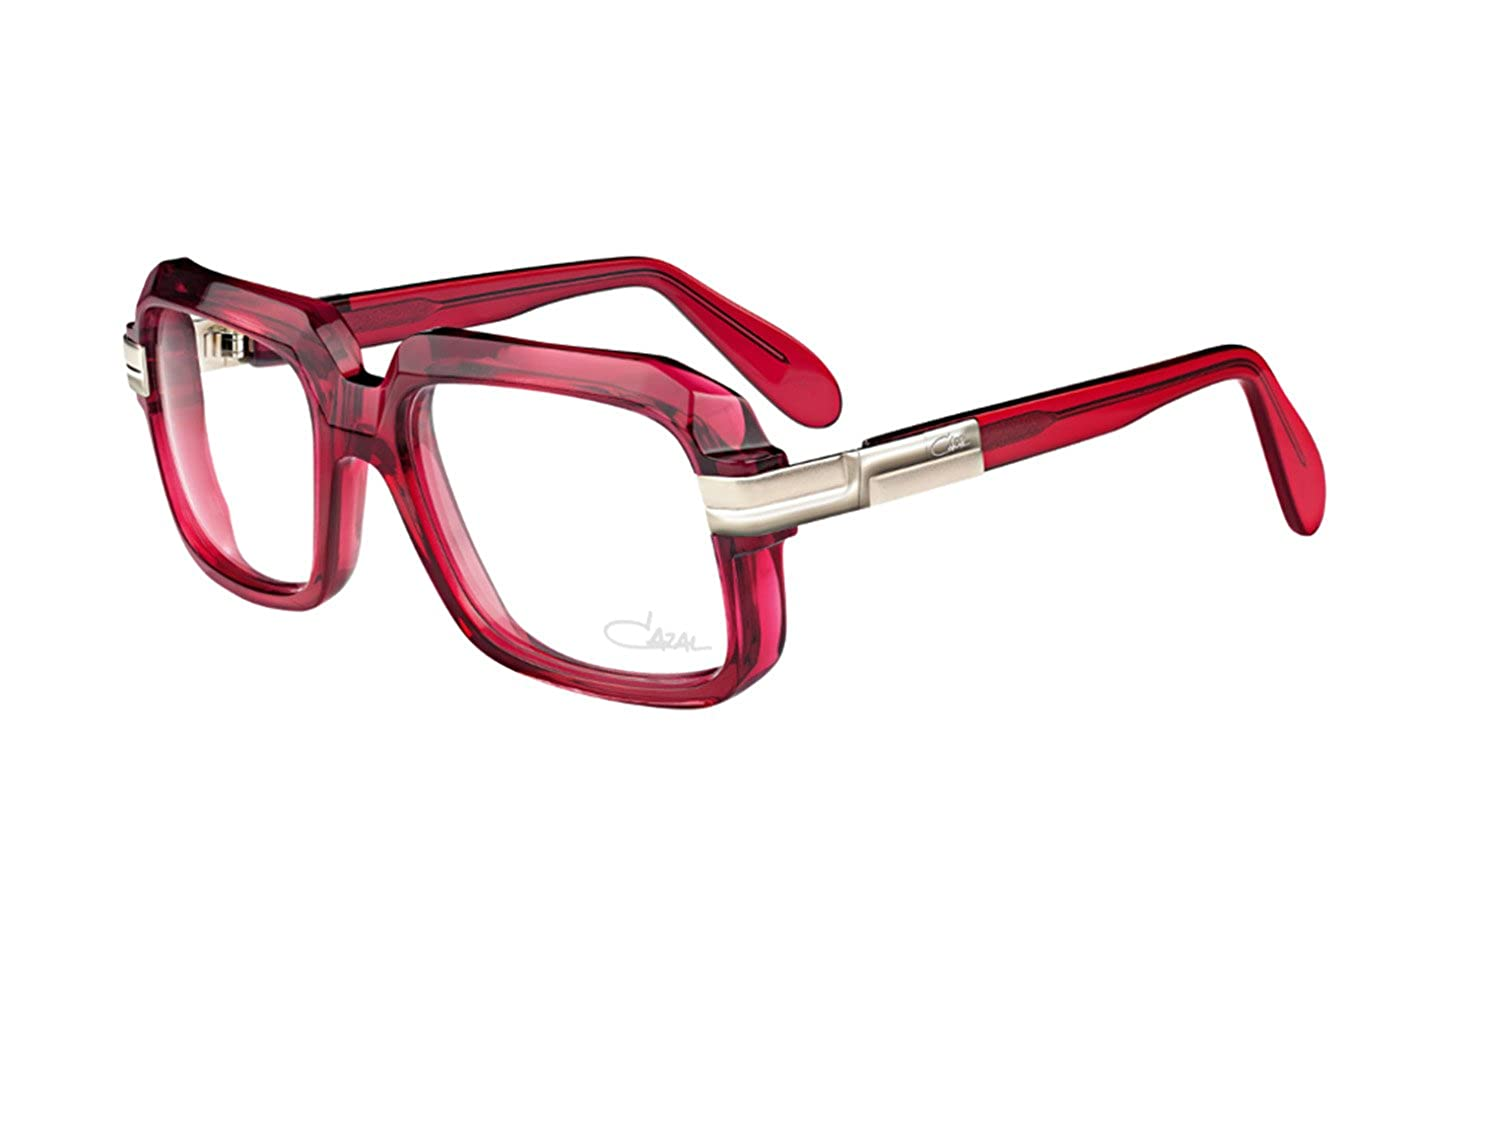 1e6d4538d665 Cazal eyeglasses color clothing jpg 1500x1125 Cazal 616 worn